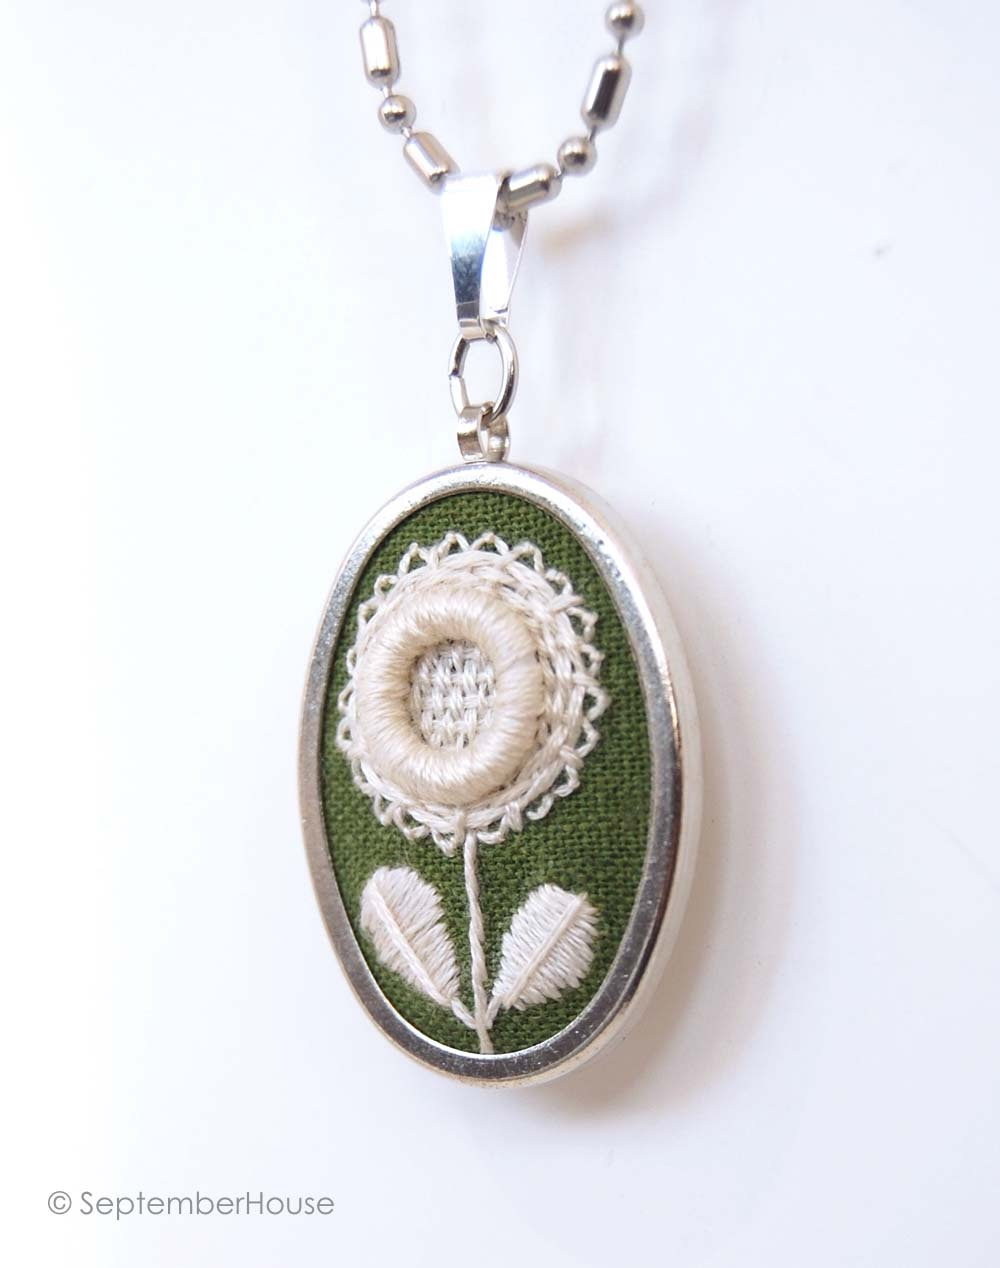 septemberhouse embroidery handmade pendant necklace